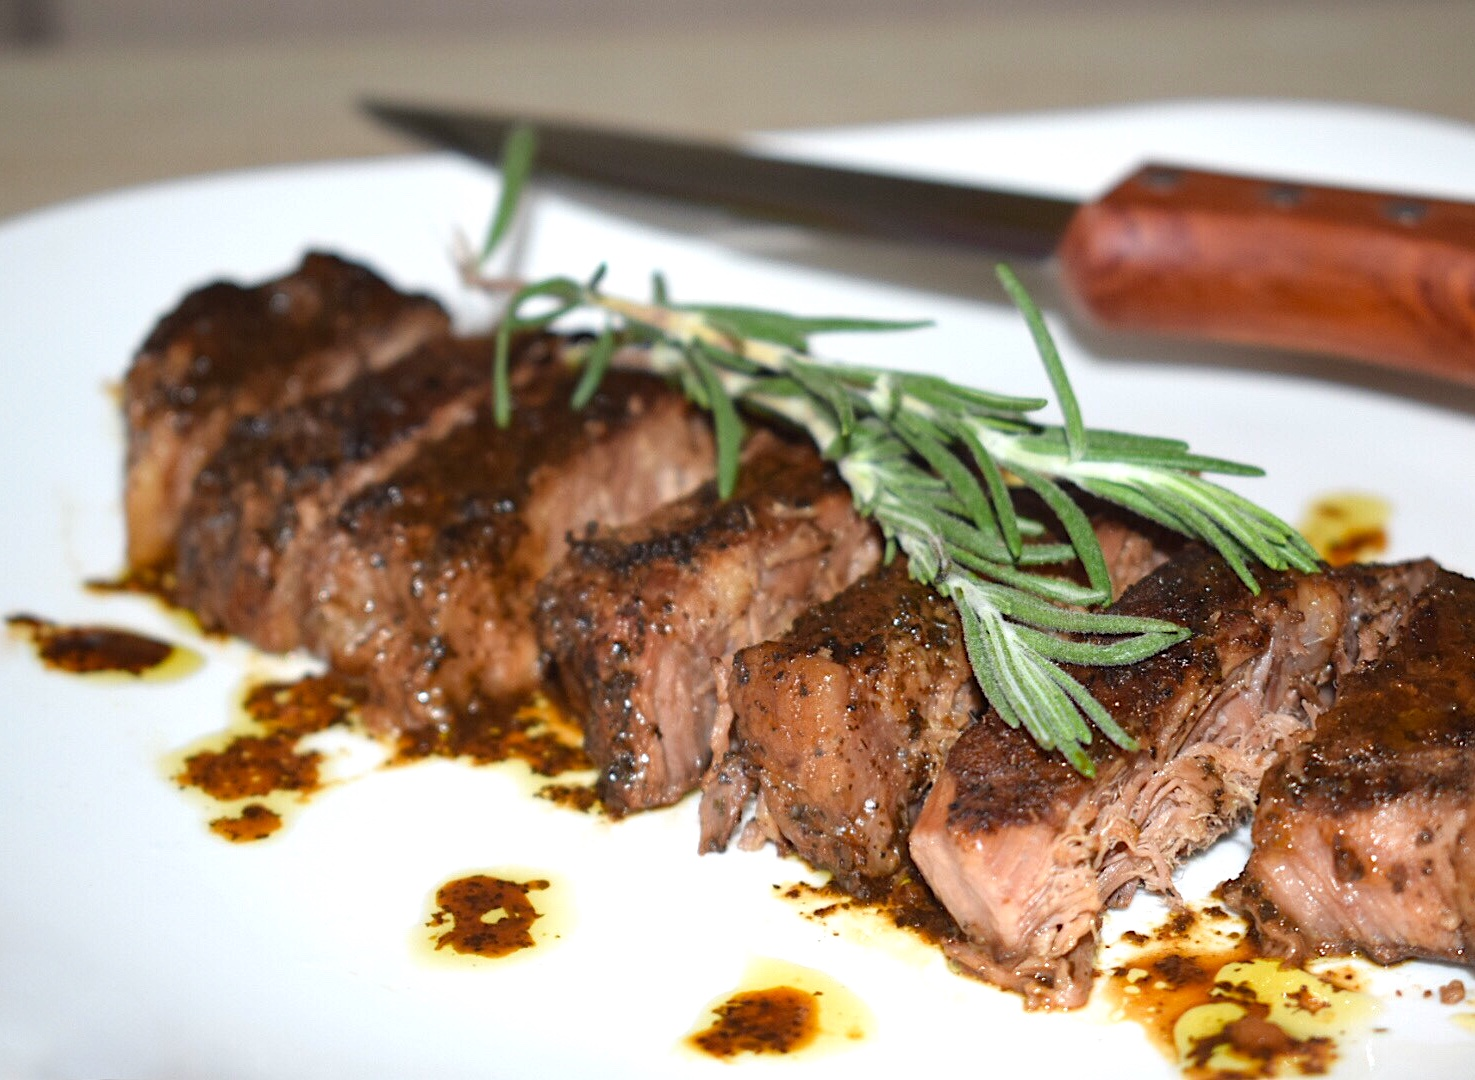 The best steak marinade in existence recipe used with the steak cut up on a plate with a steak knife